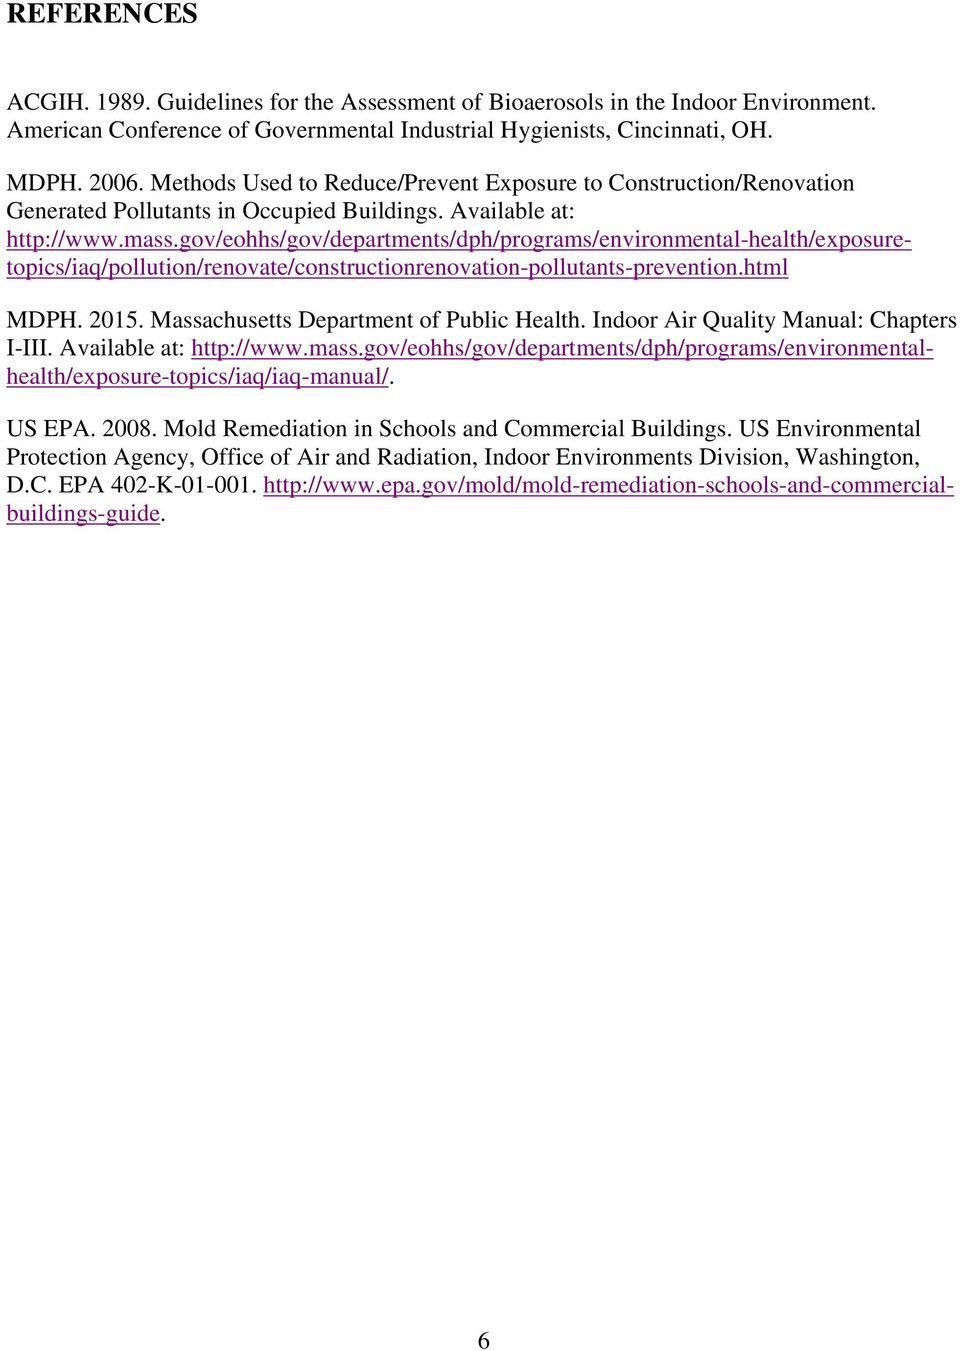 gov/eohhs/gov/departments/dph/programs/environmental-health/exposuretopics/iaq/pollution/renovate/constructionrenovation-pollutants-prevention.html MDPH. 2015.